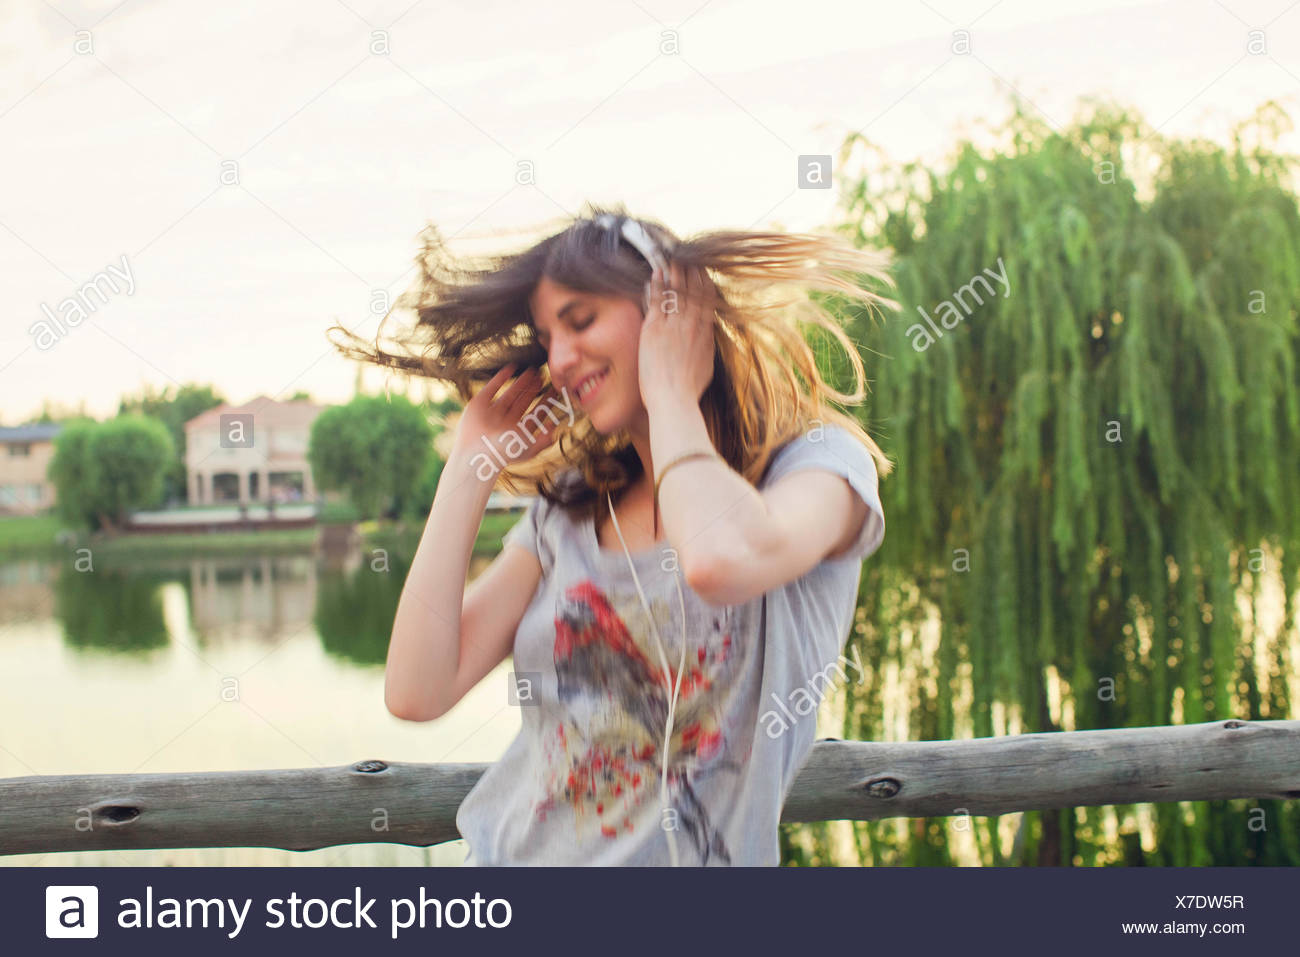 Young woman enthusiatically listening to music - Stock Image